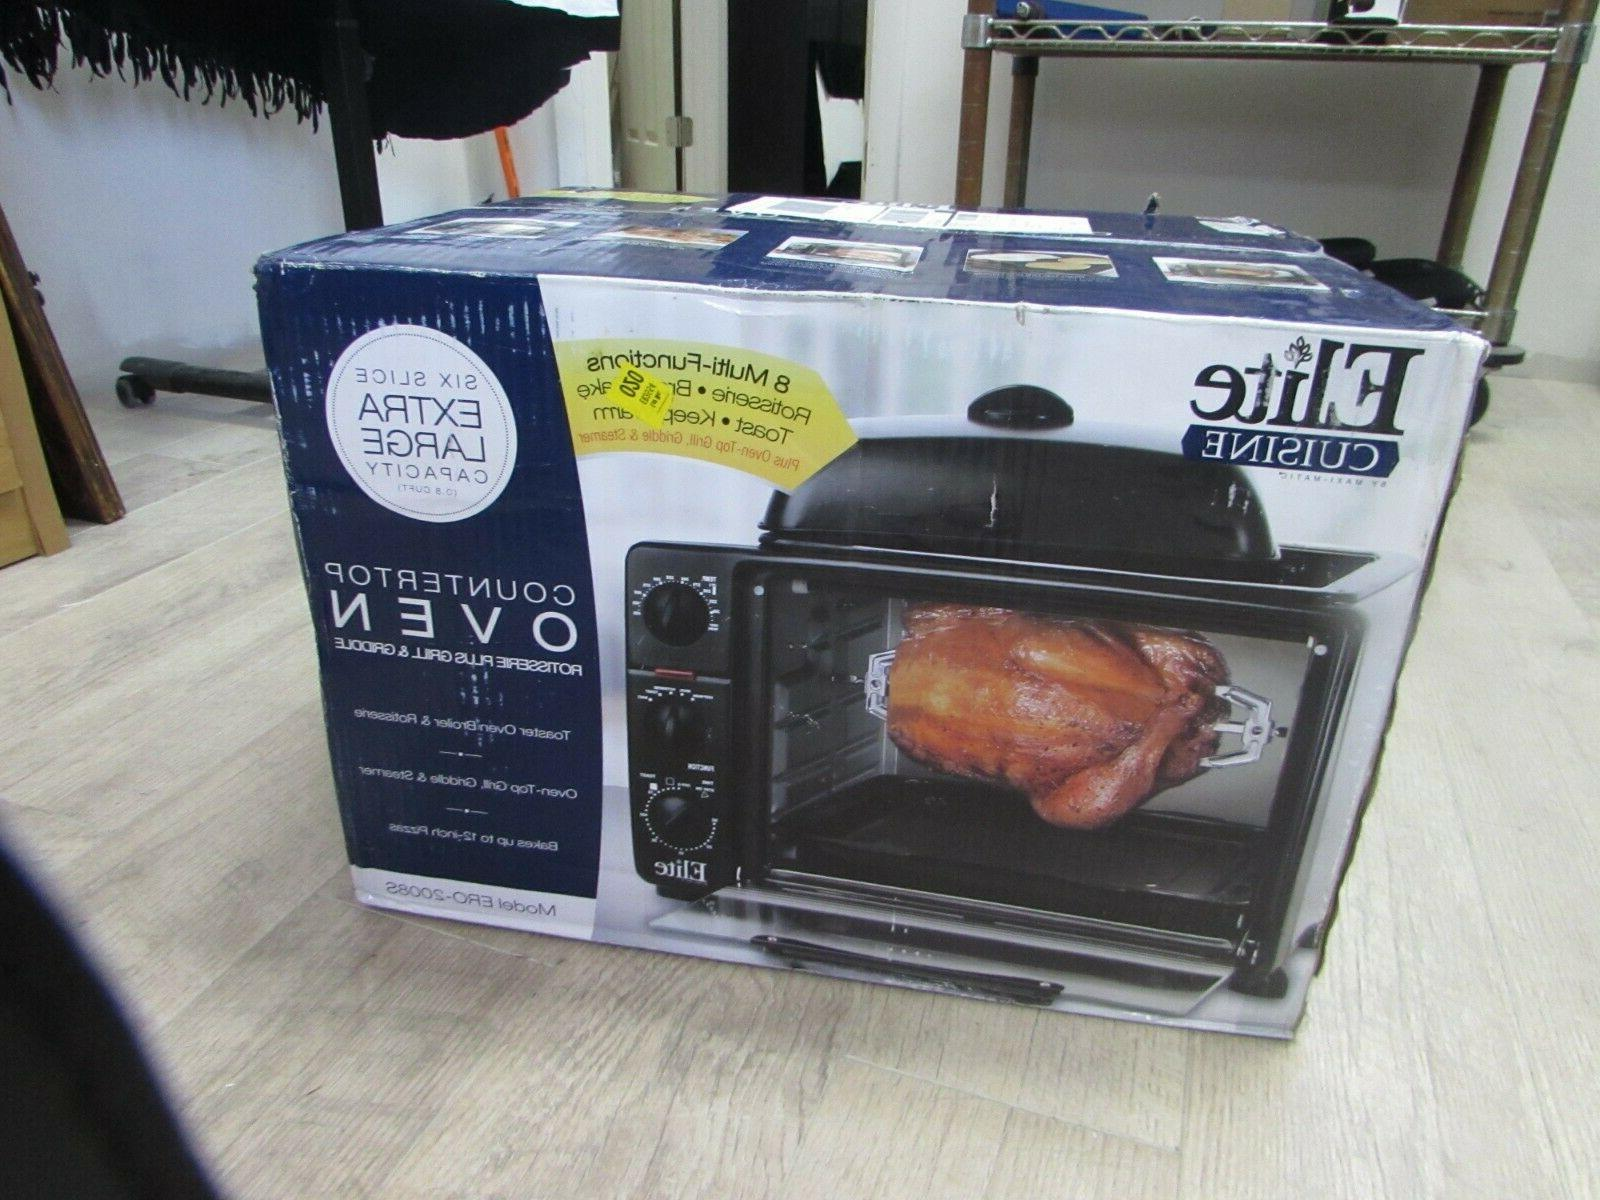 ero 2008s countertop toaster oven with top